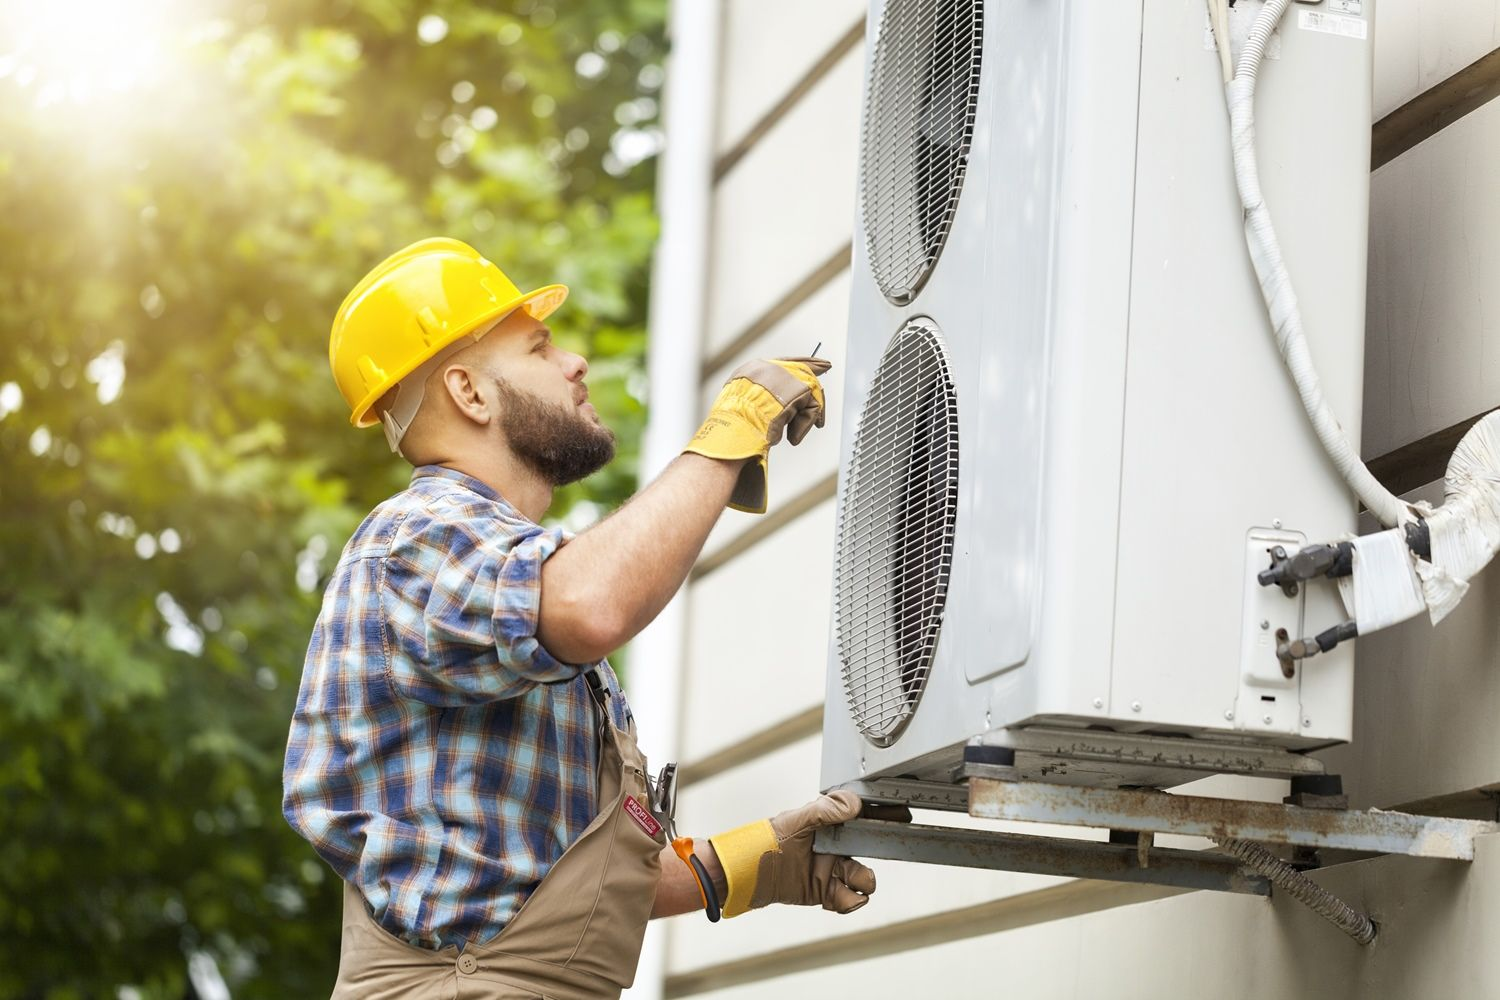 A1 Heating & AC Repair Phoenix provides emergency heating